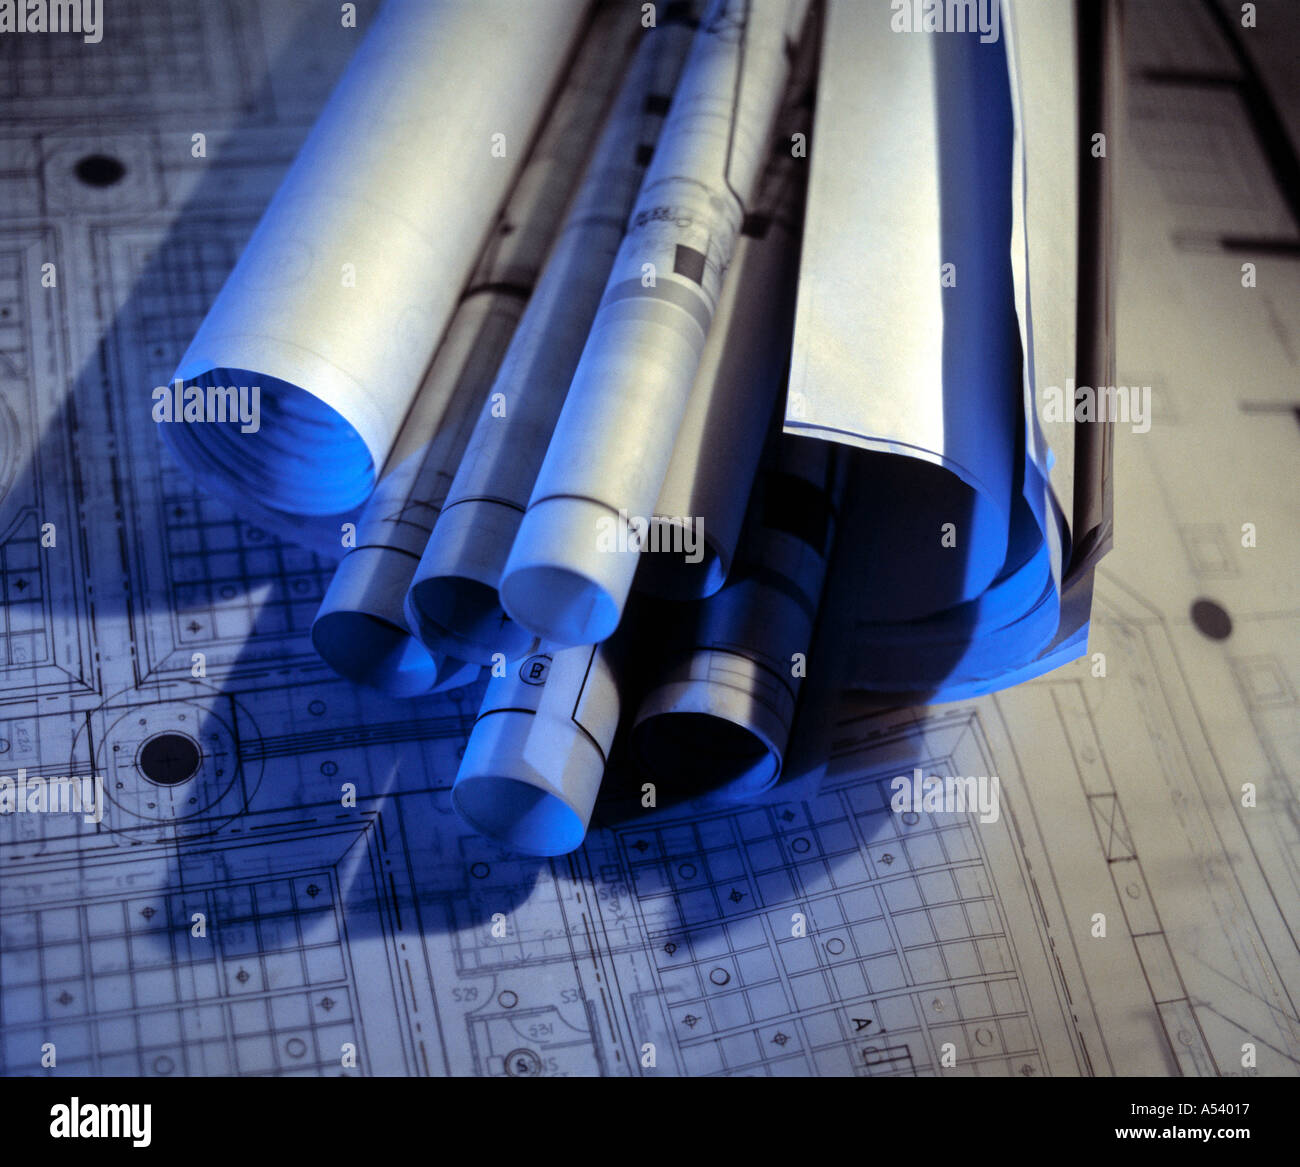 plans with blue light - Stock Image